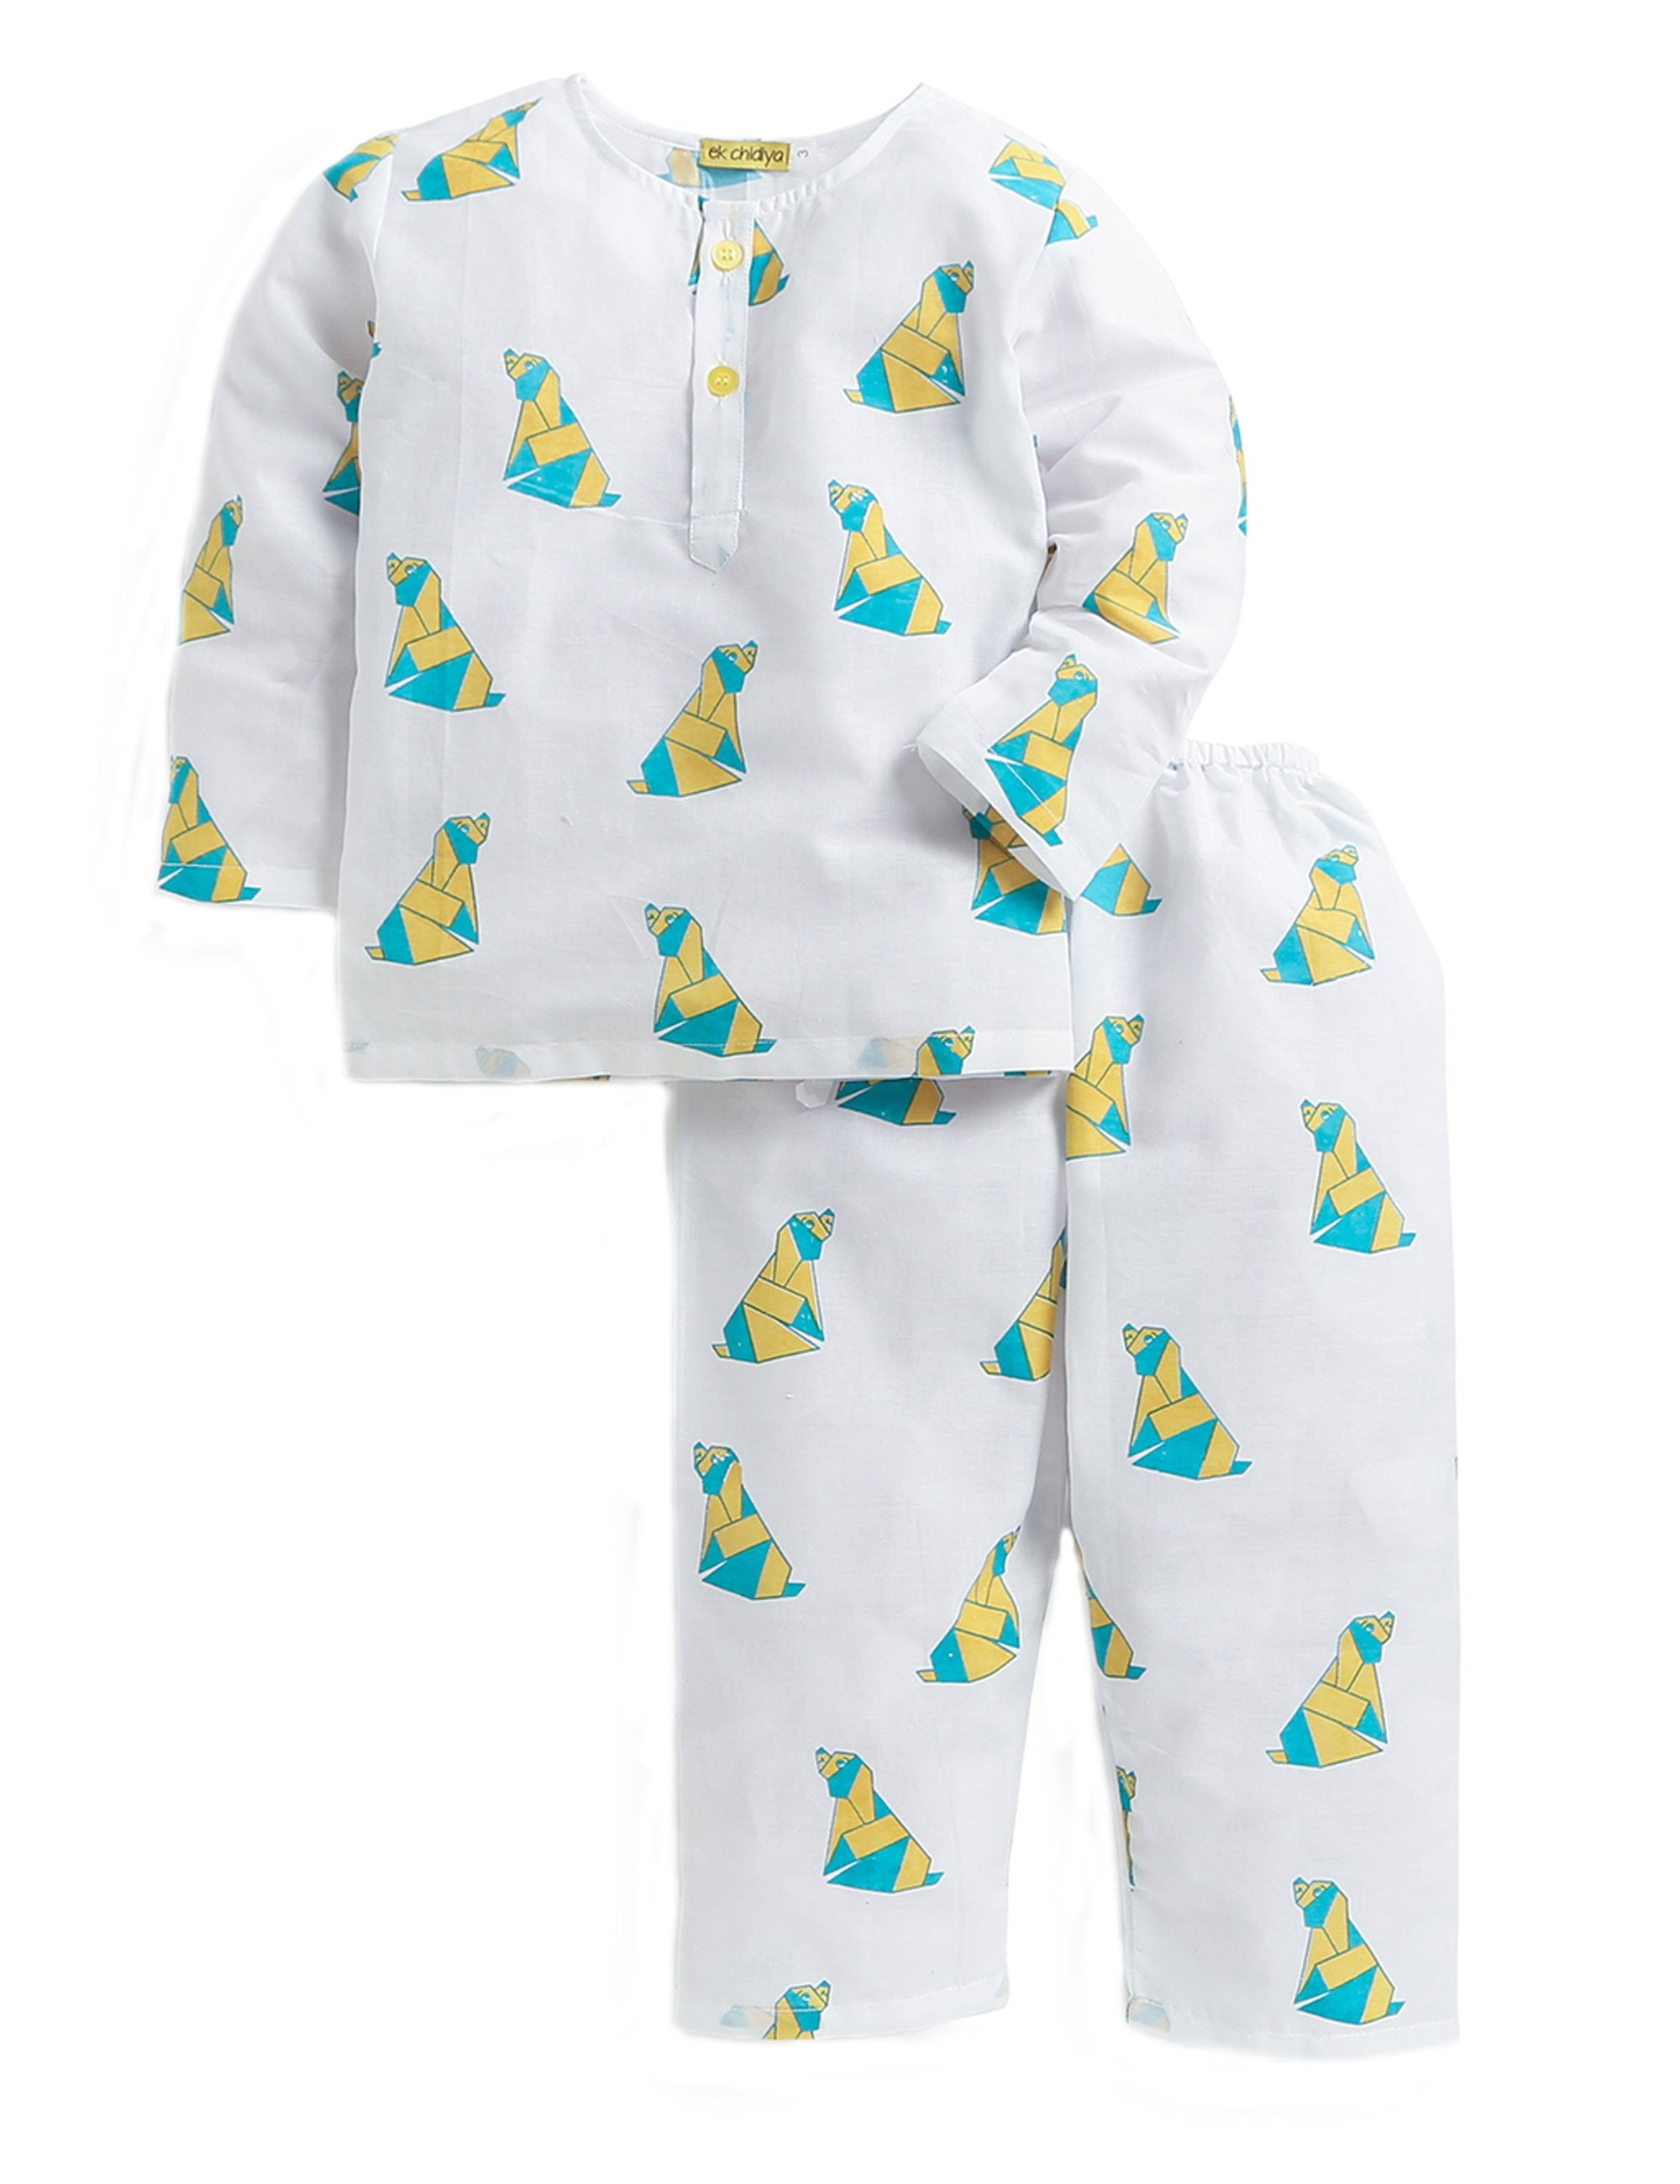 Doggie Printed Nightwear In White and Yellow Colour for Boys and Girls